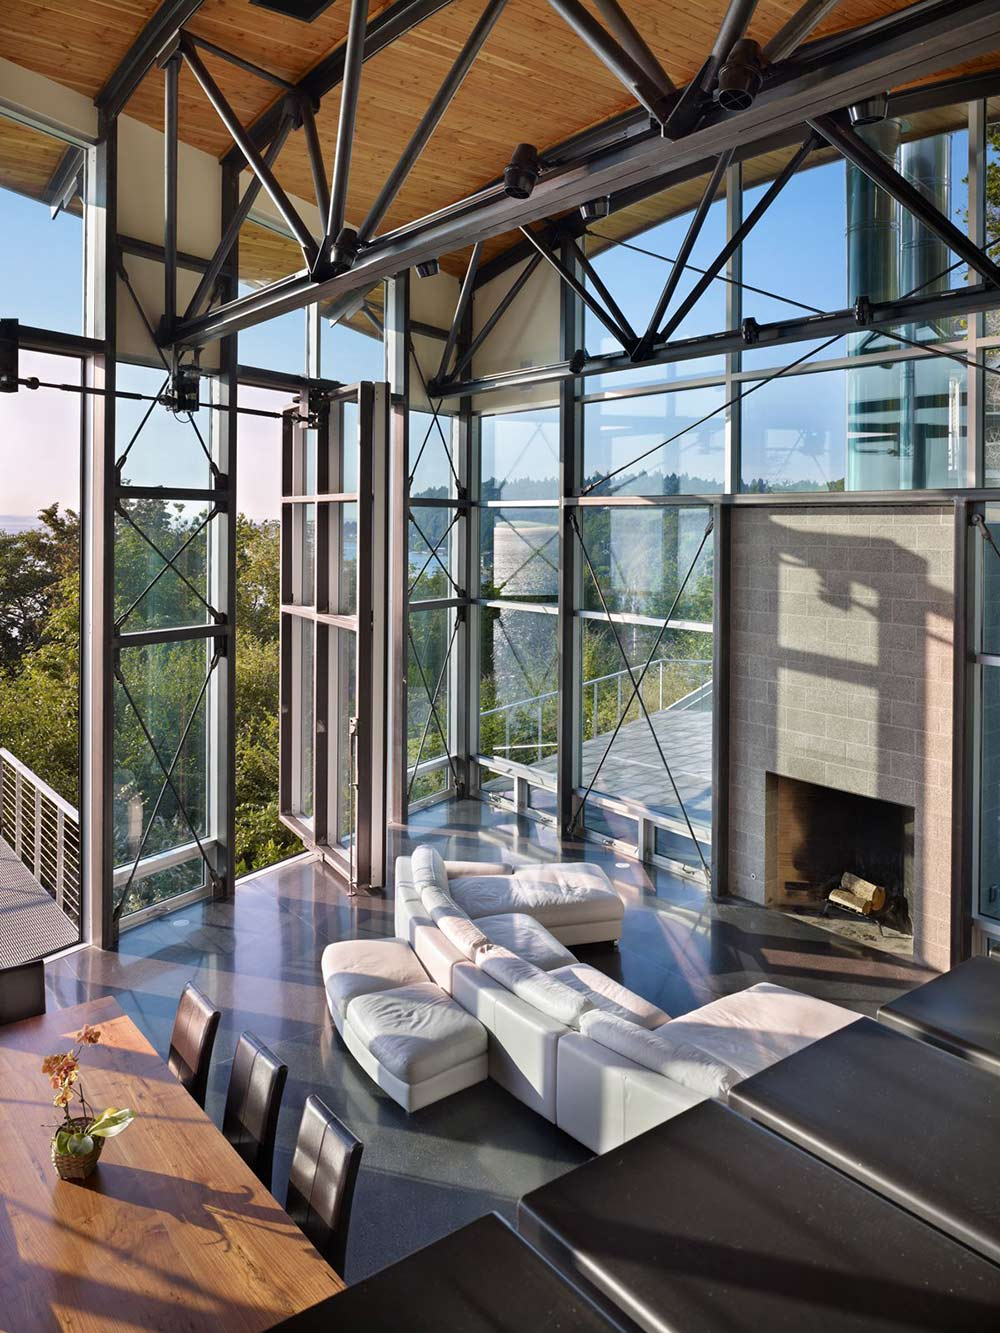 Living Space, White Sofas, Fireplace, West Seattle Residence with Spectacular Inlet Views